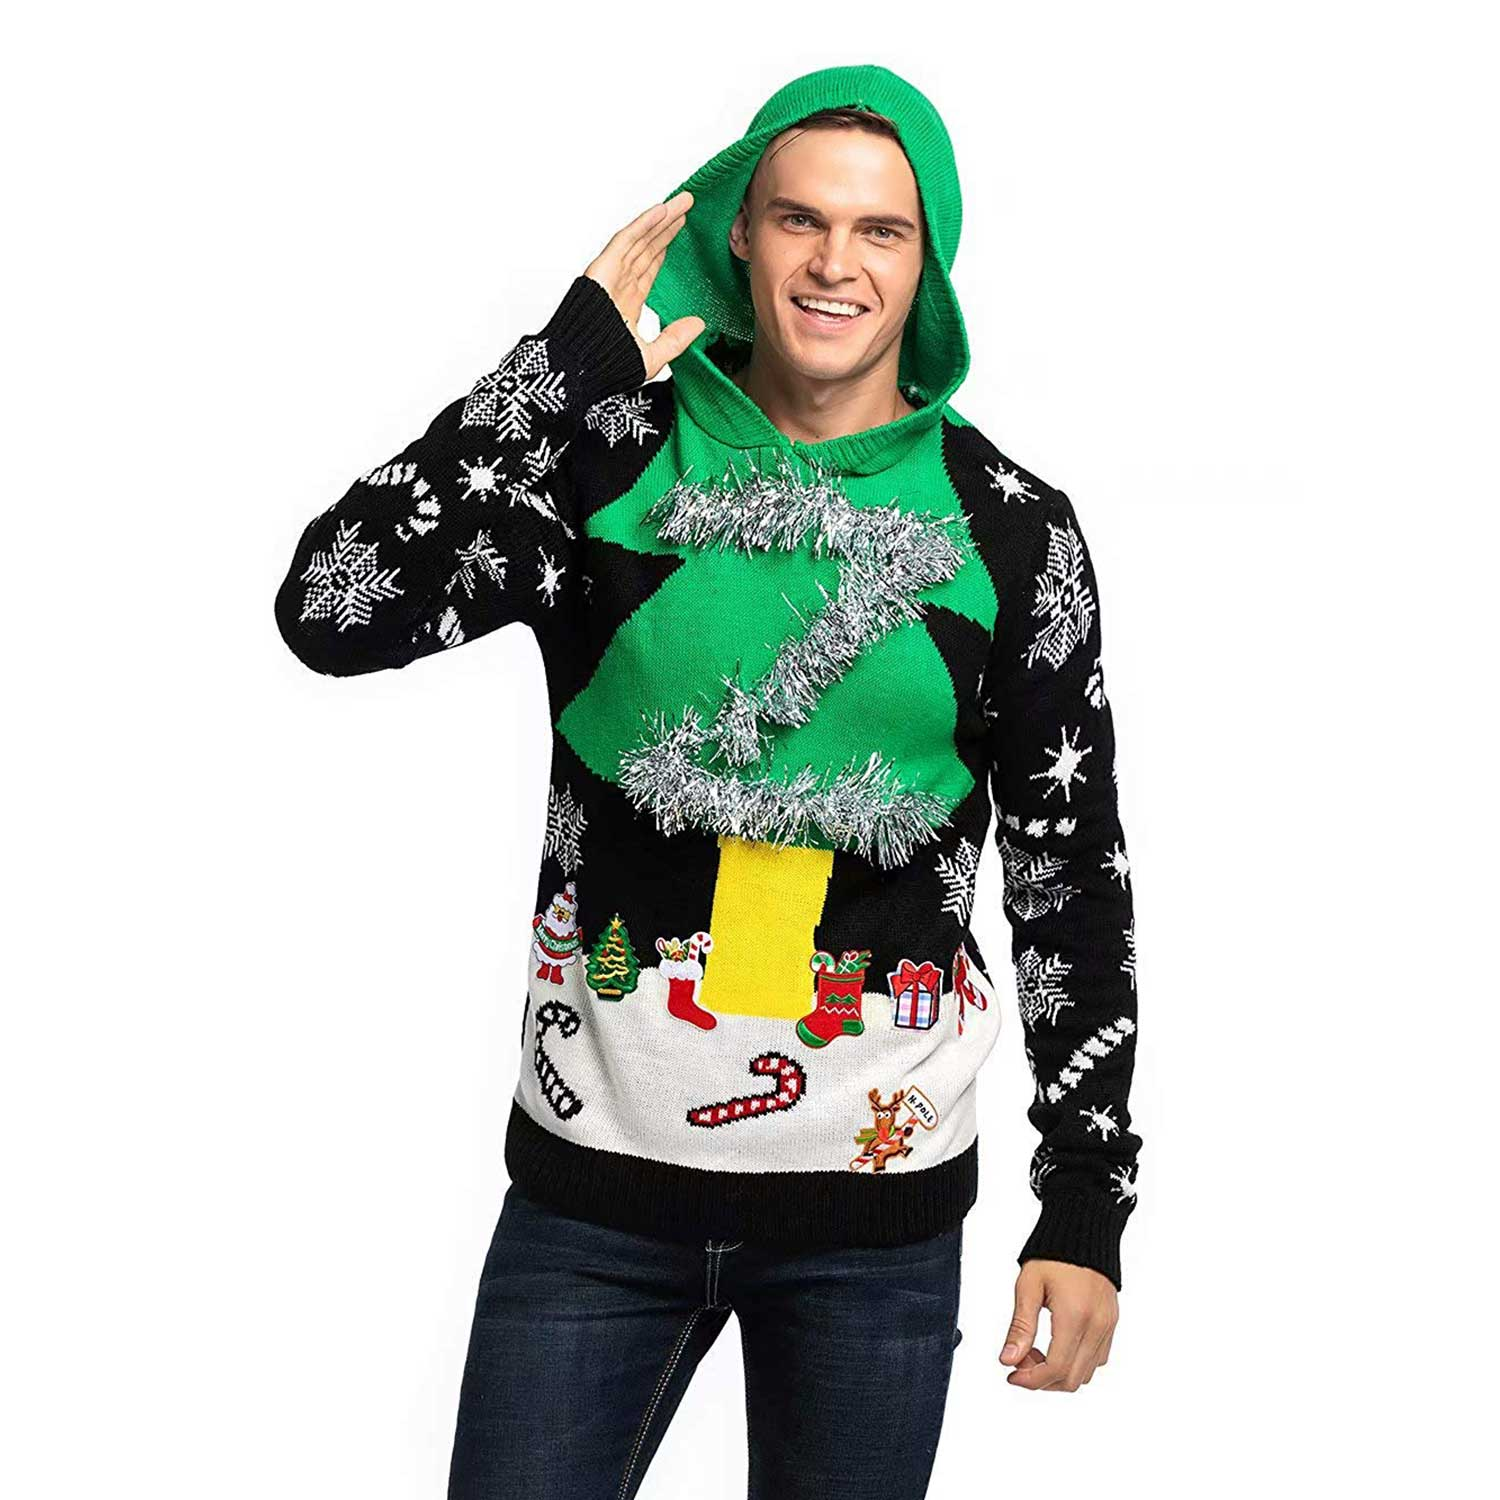 Mens Ugly Christmas Sweater.Knitted Men S Ugly Christmas Sweater Hoodie